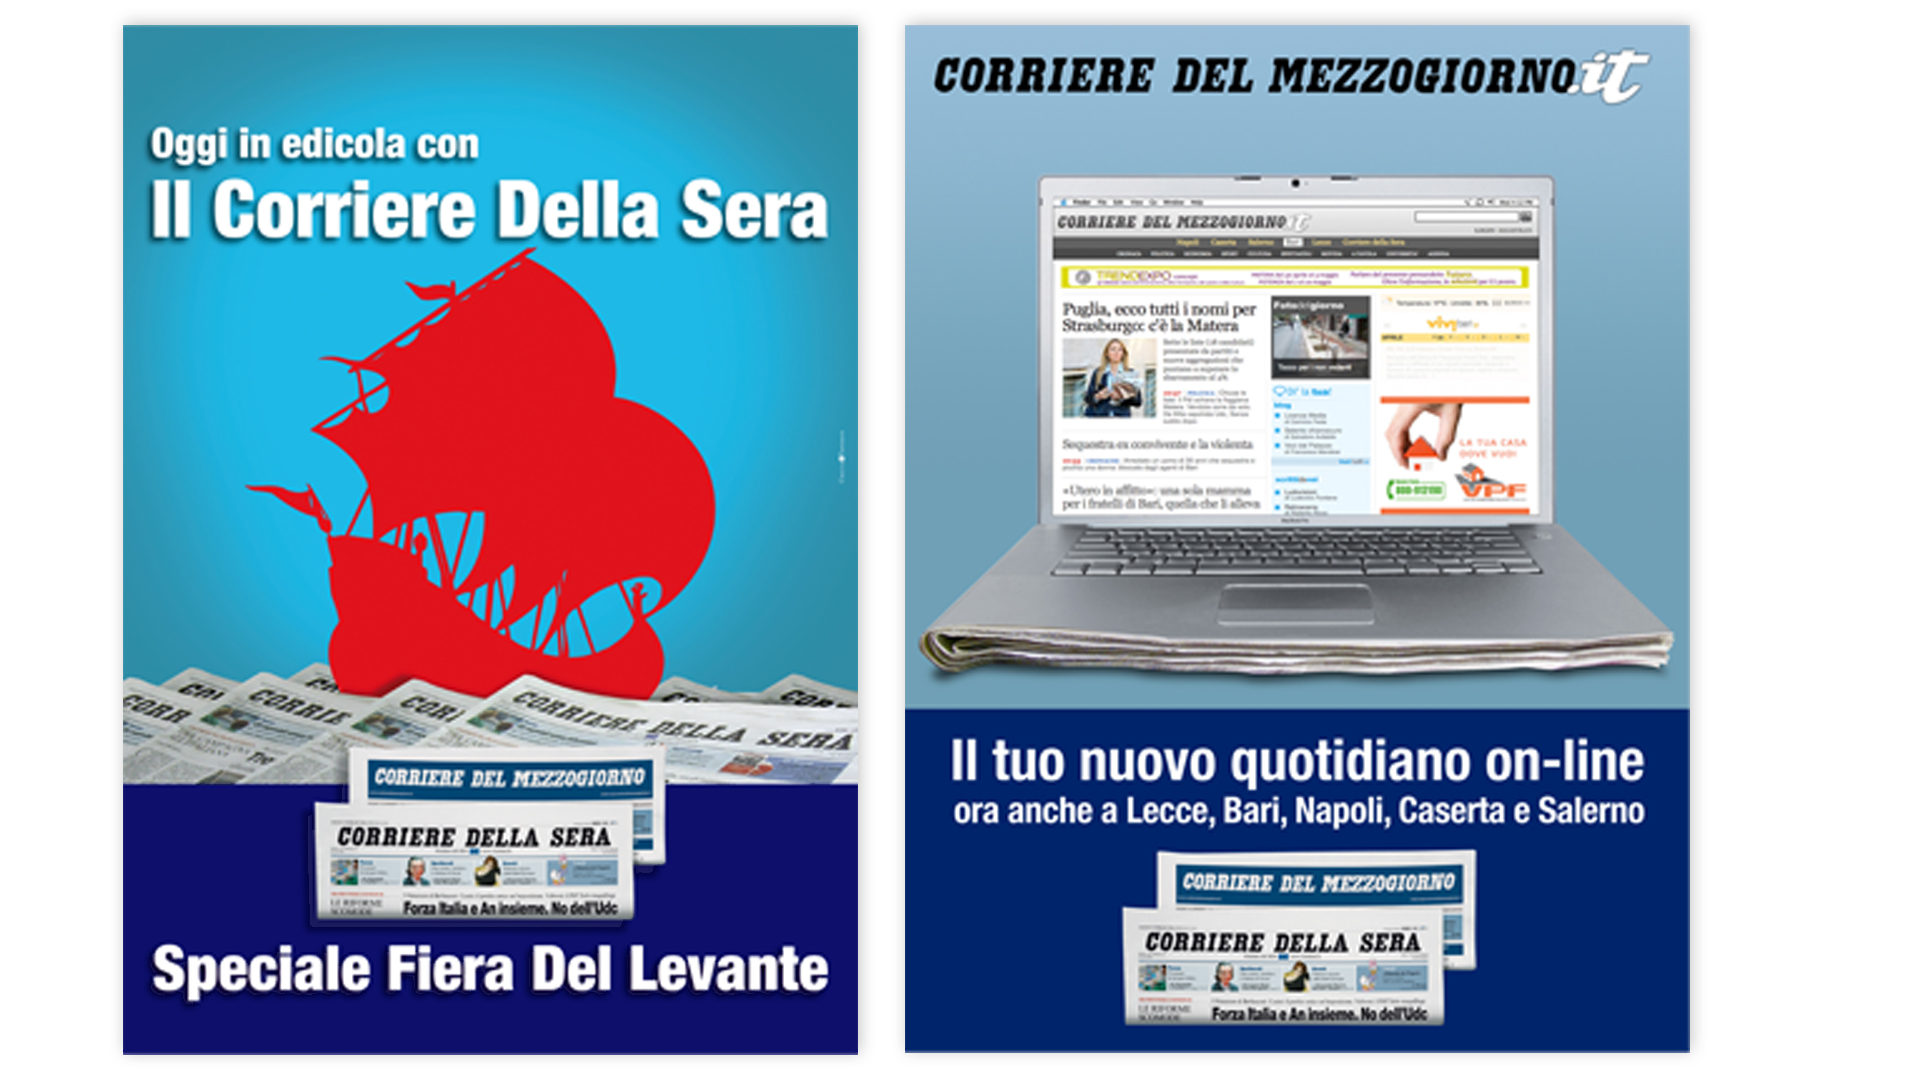 advertising presidio Fiera del Levante - advertising quotidiano on line